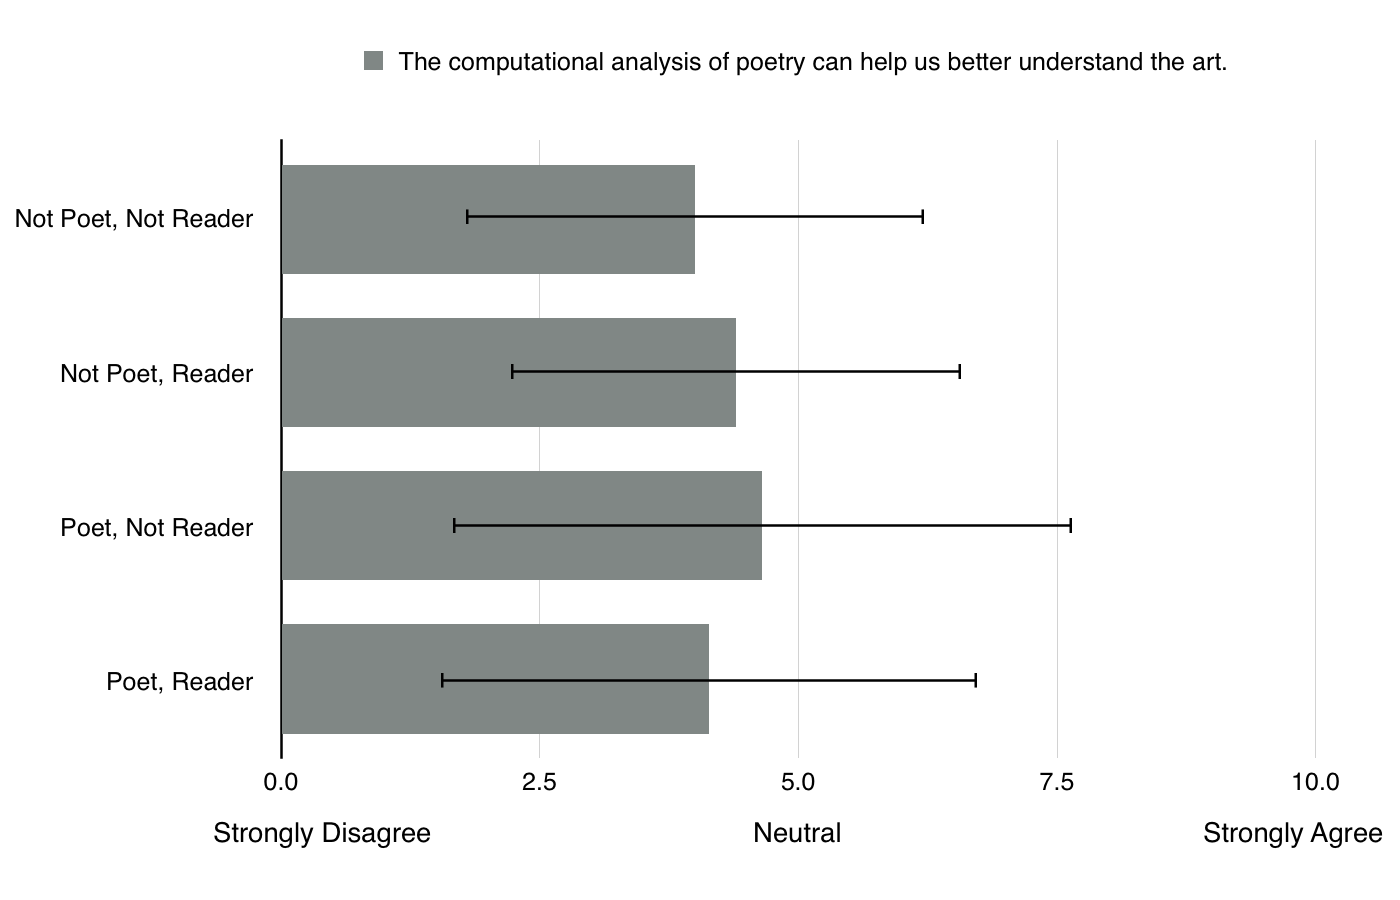 Attitudes toward benefits of computational analysis to poetry of survey participants (n=307)